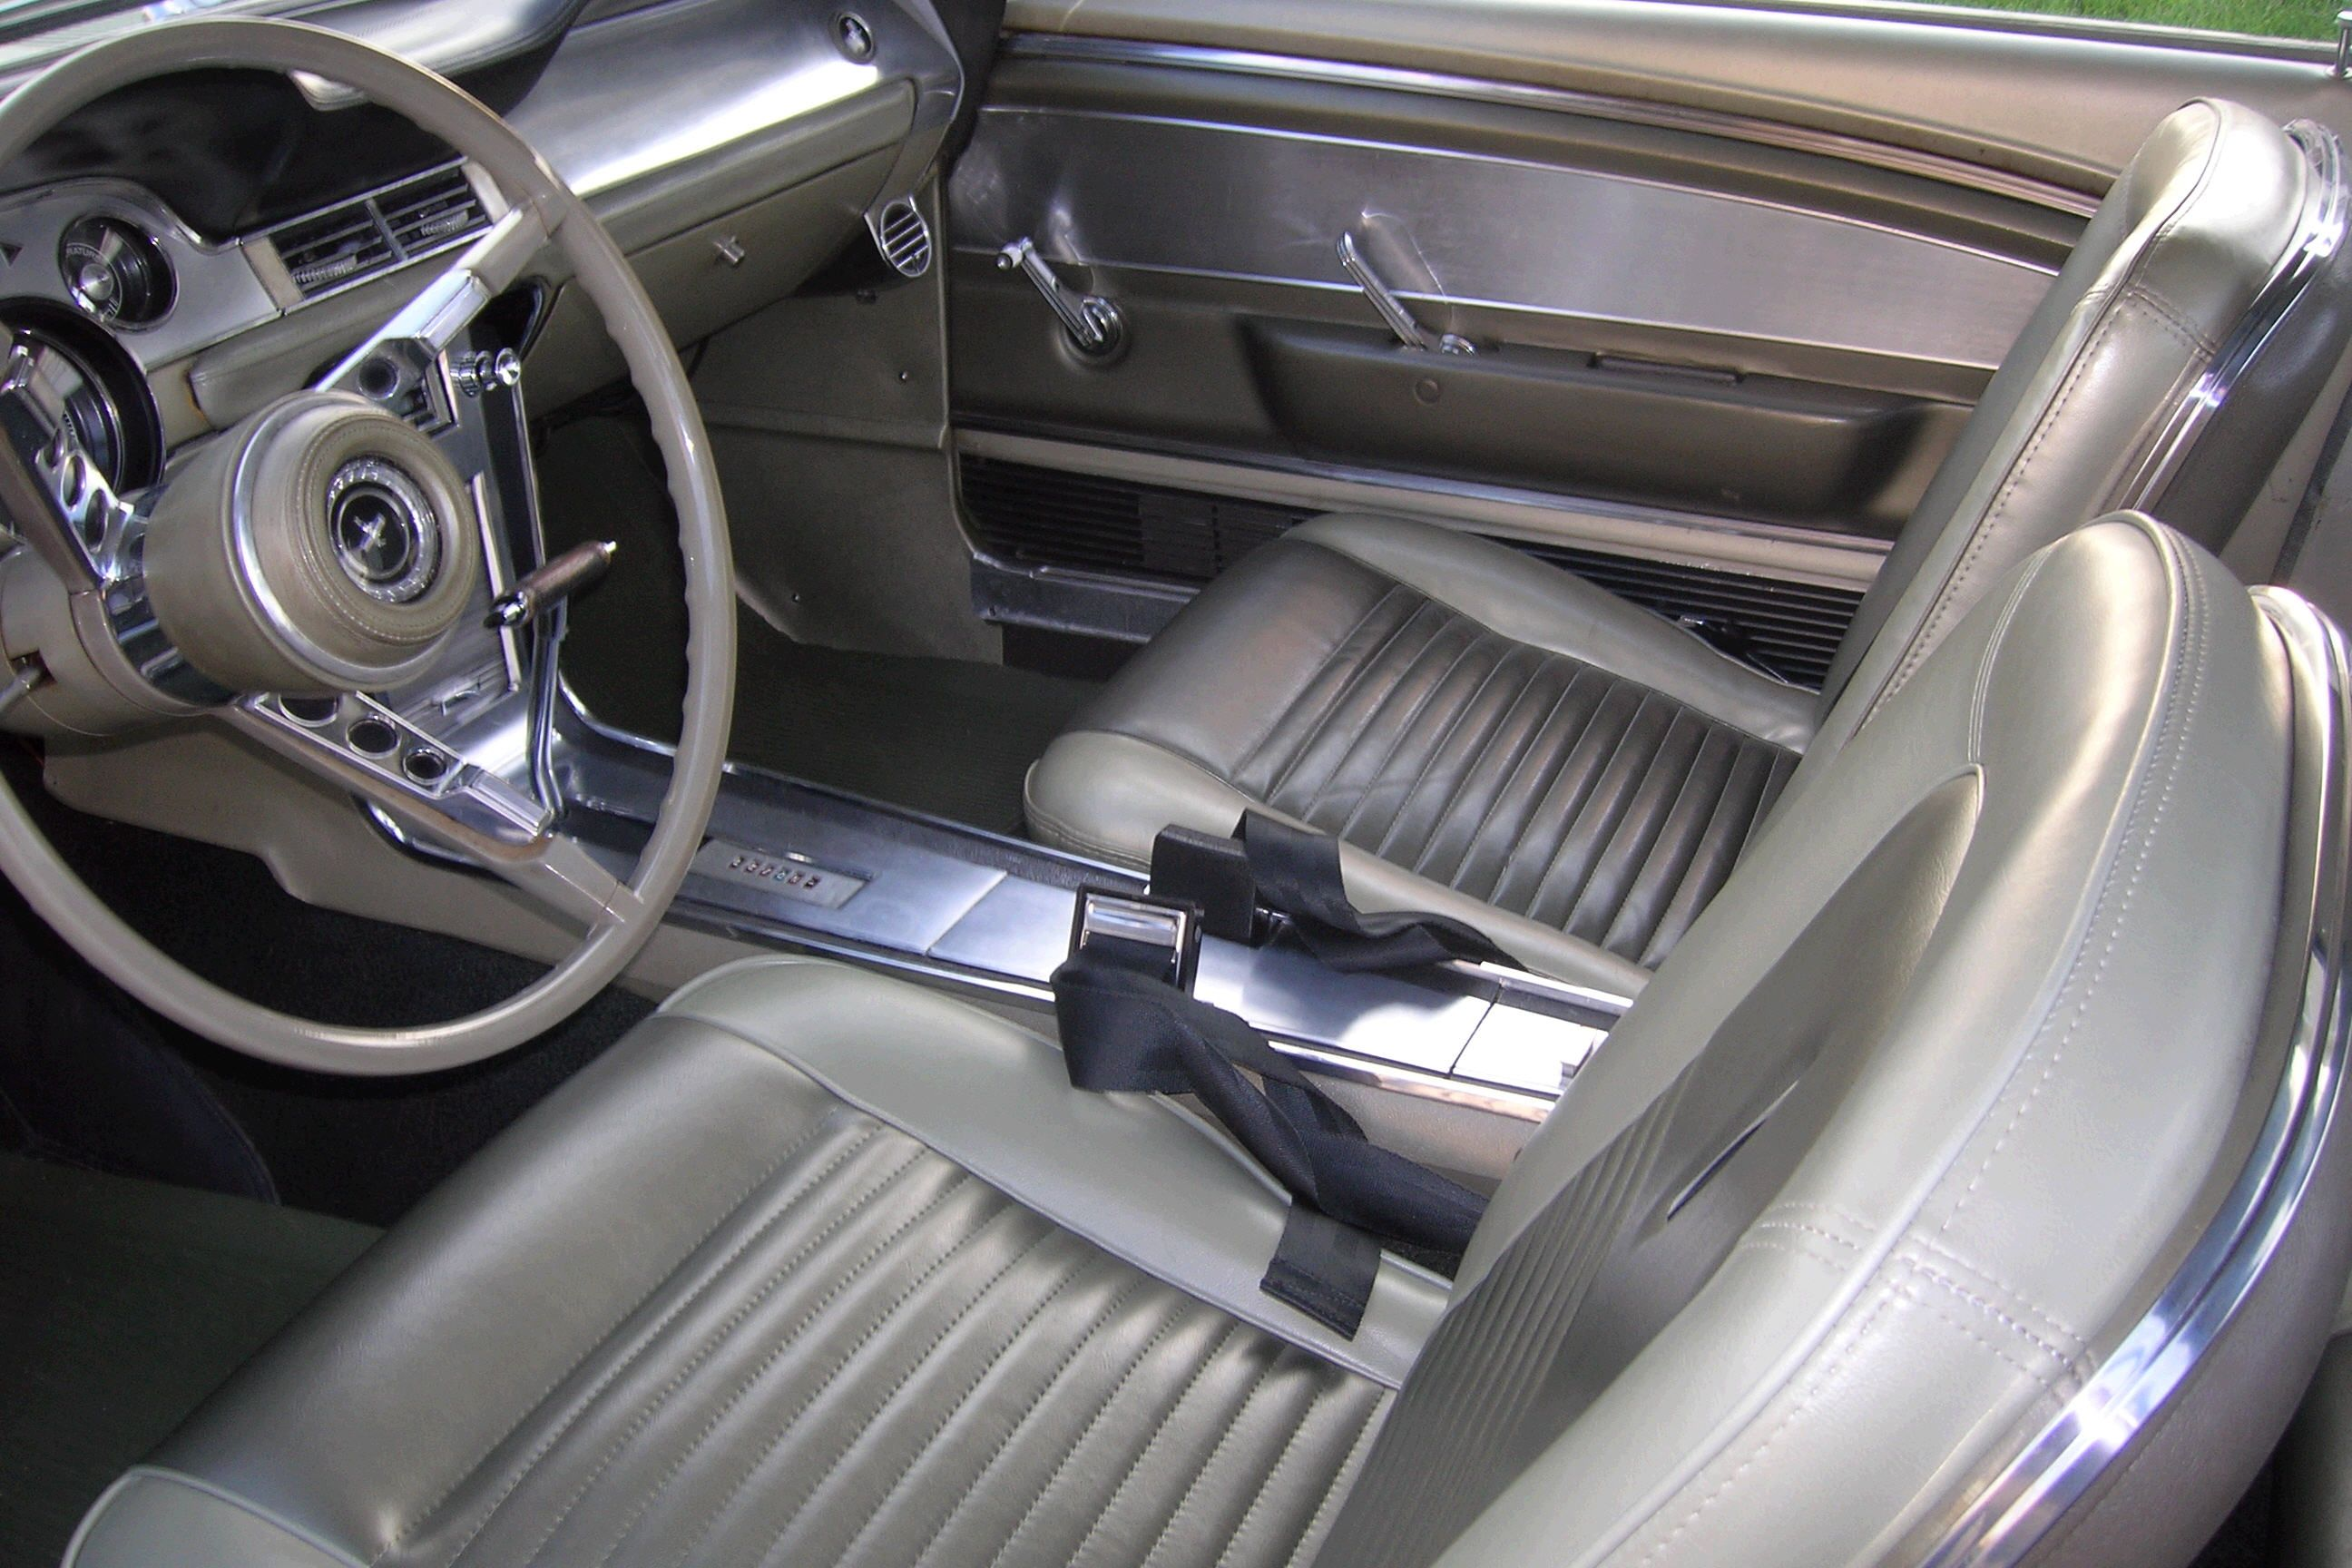 interiors 67 all original 67 mustang coupe ideas pinterest 67 mustang mustang ford and mustang coupe